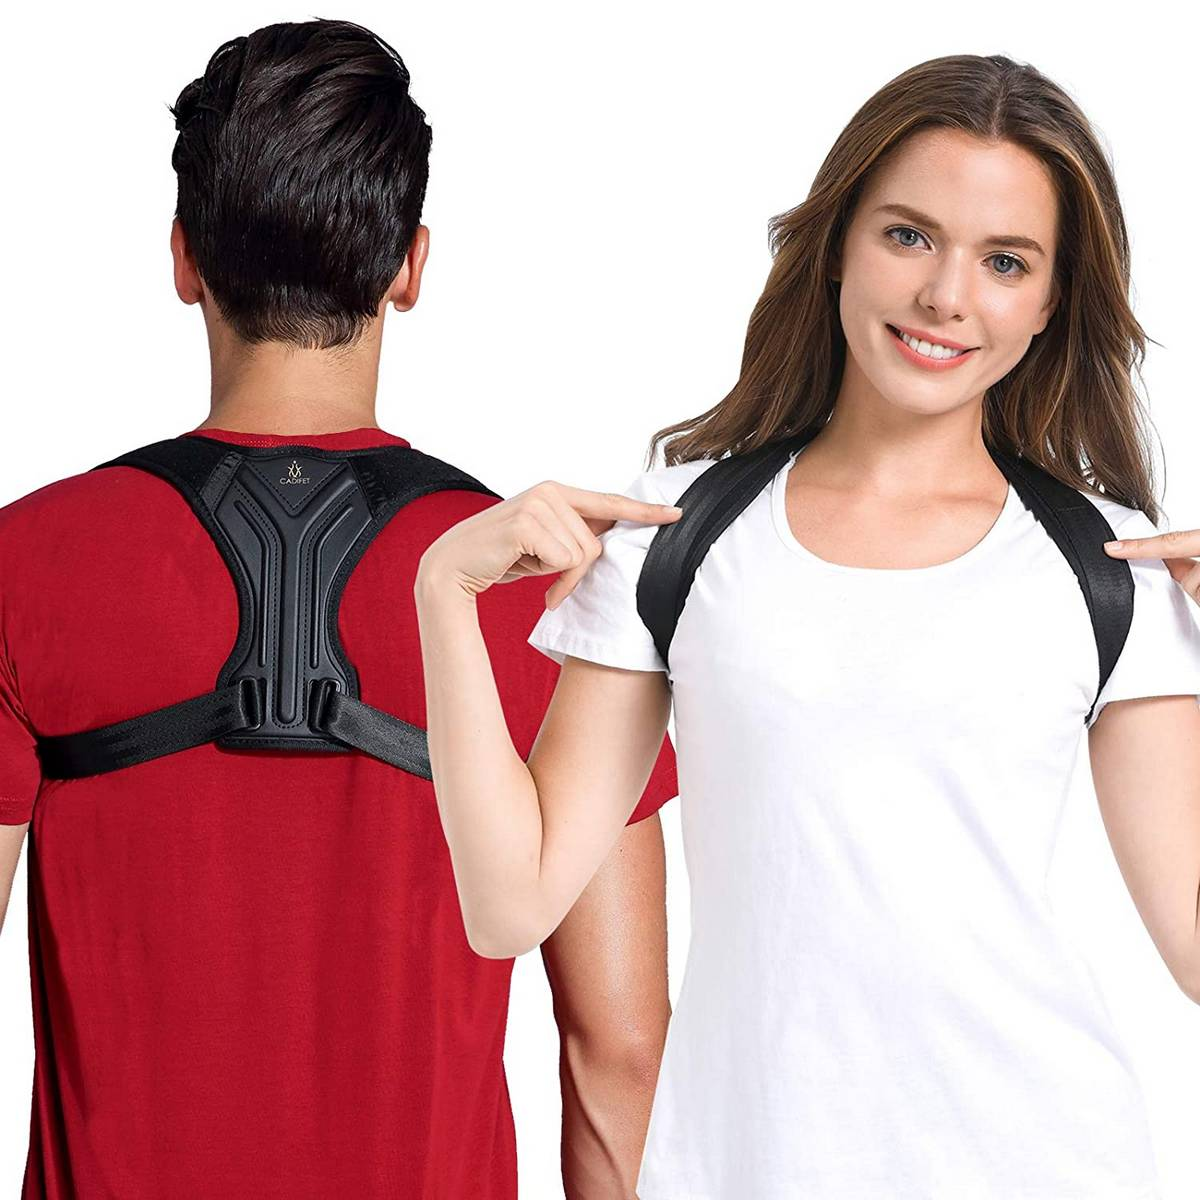 Posture Corrector for Women and Men - Superior Posture Correction for Clavicle Support and Comfortable Posture Training - Providng Neck, Back and Shoulder Straight